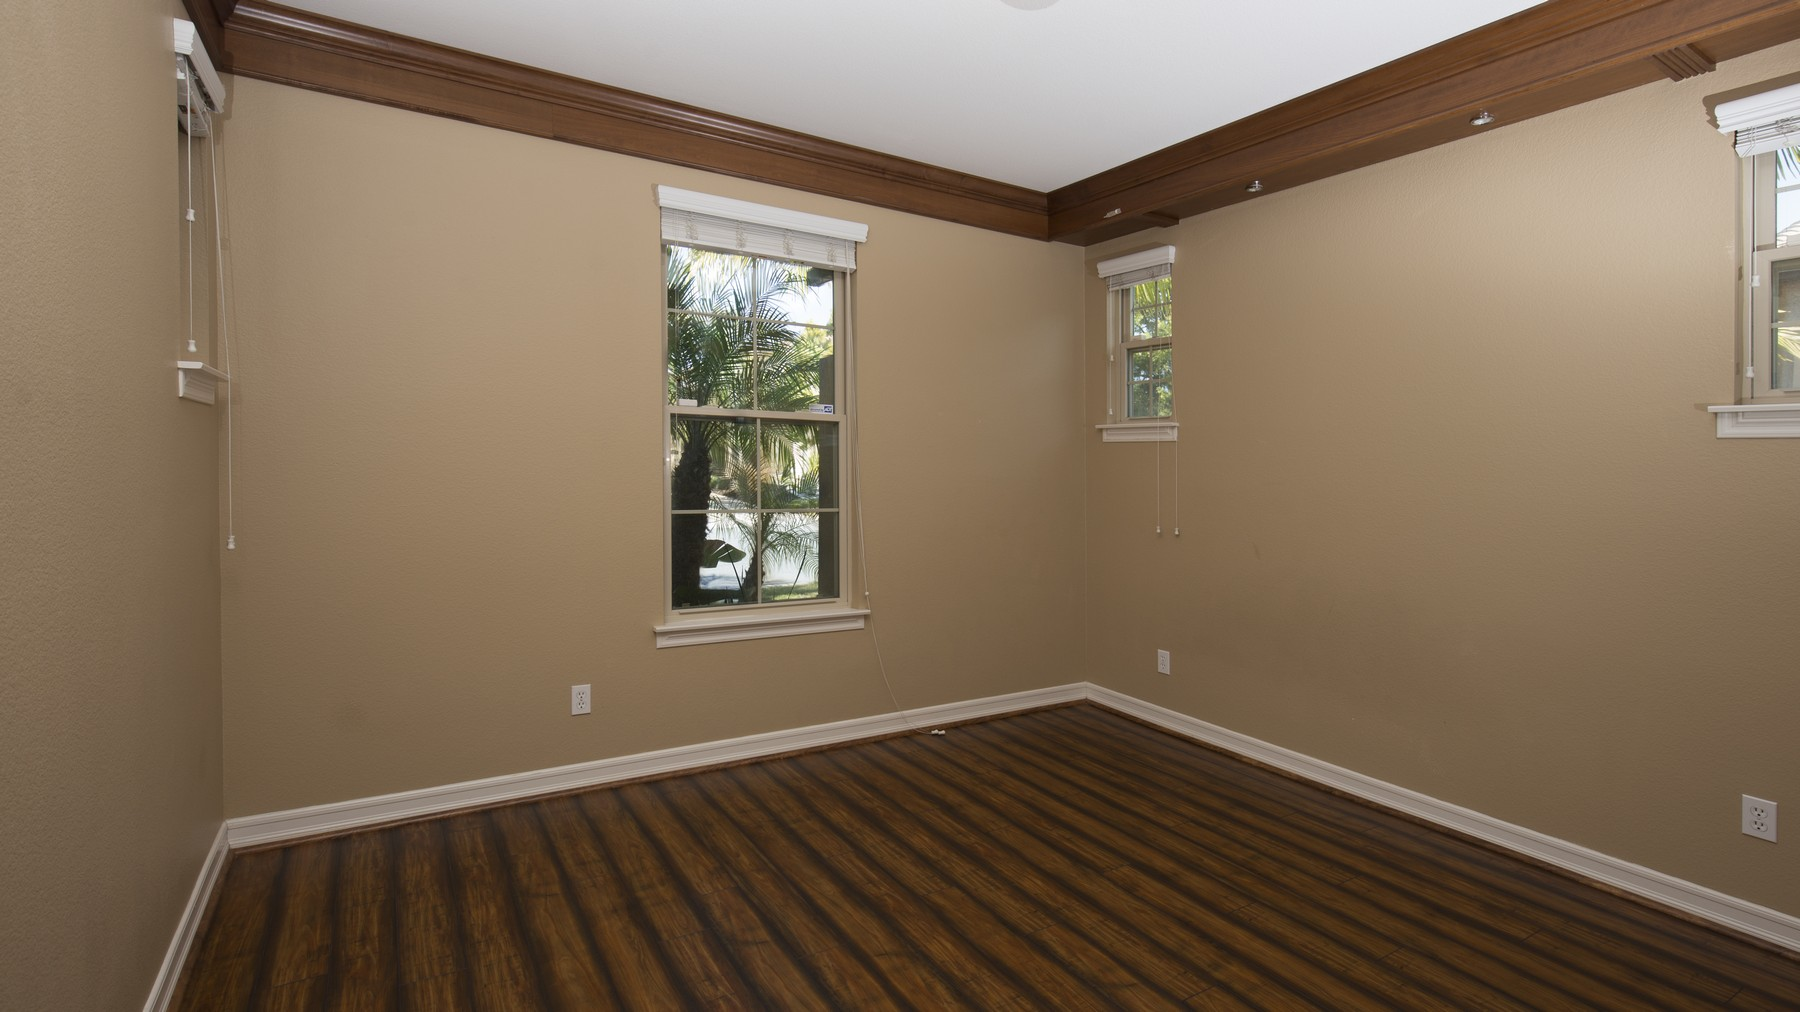 Additional photo for property listing at 7271 Primrose Lane  San Diego, Калифорния 92129 Соединенные Штаты